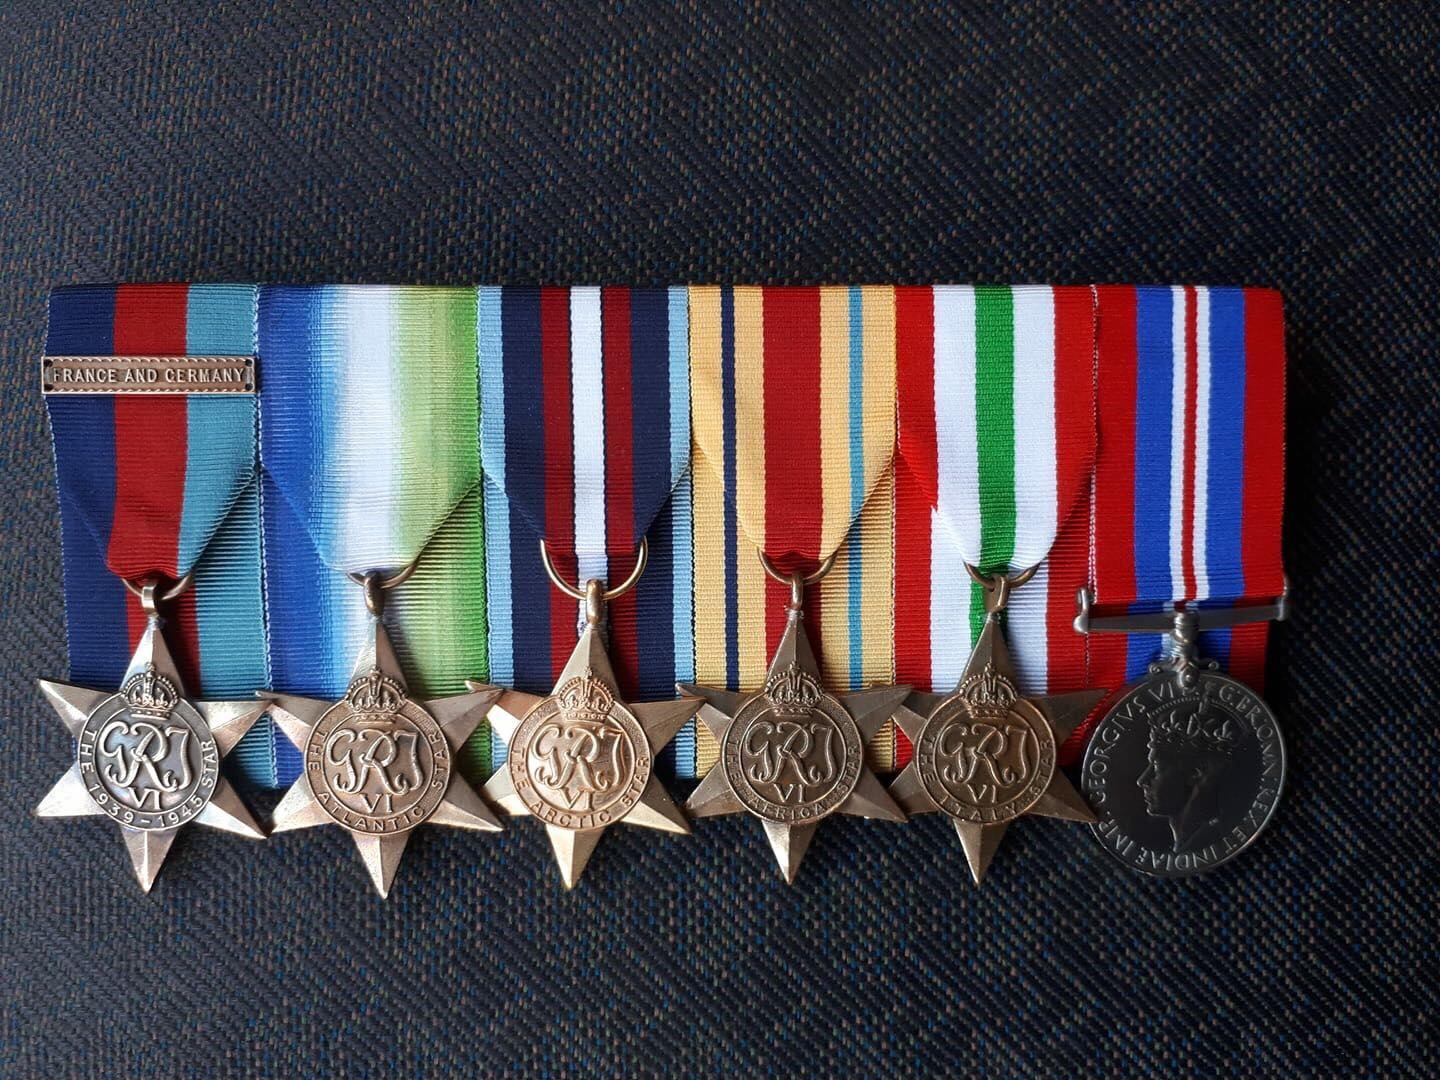 The medals Able Seaman Young earned for his service during WW2